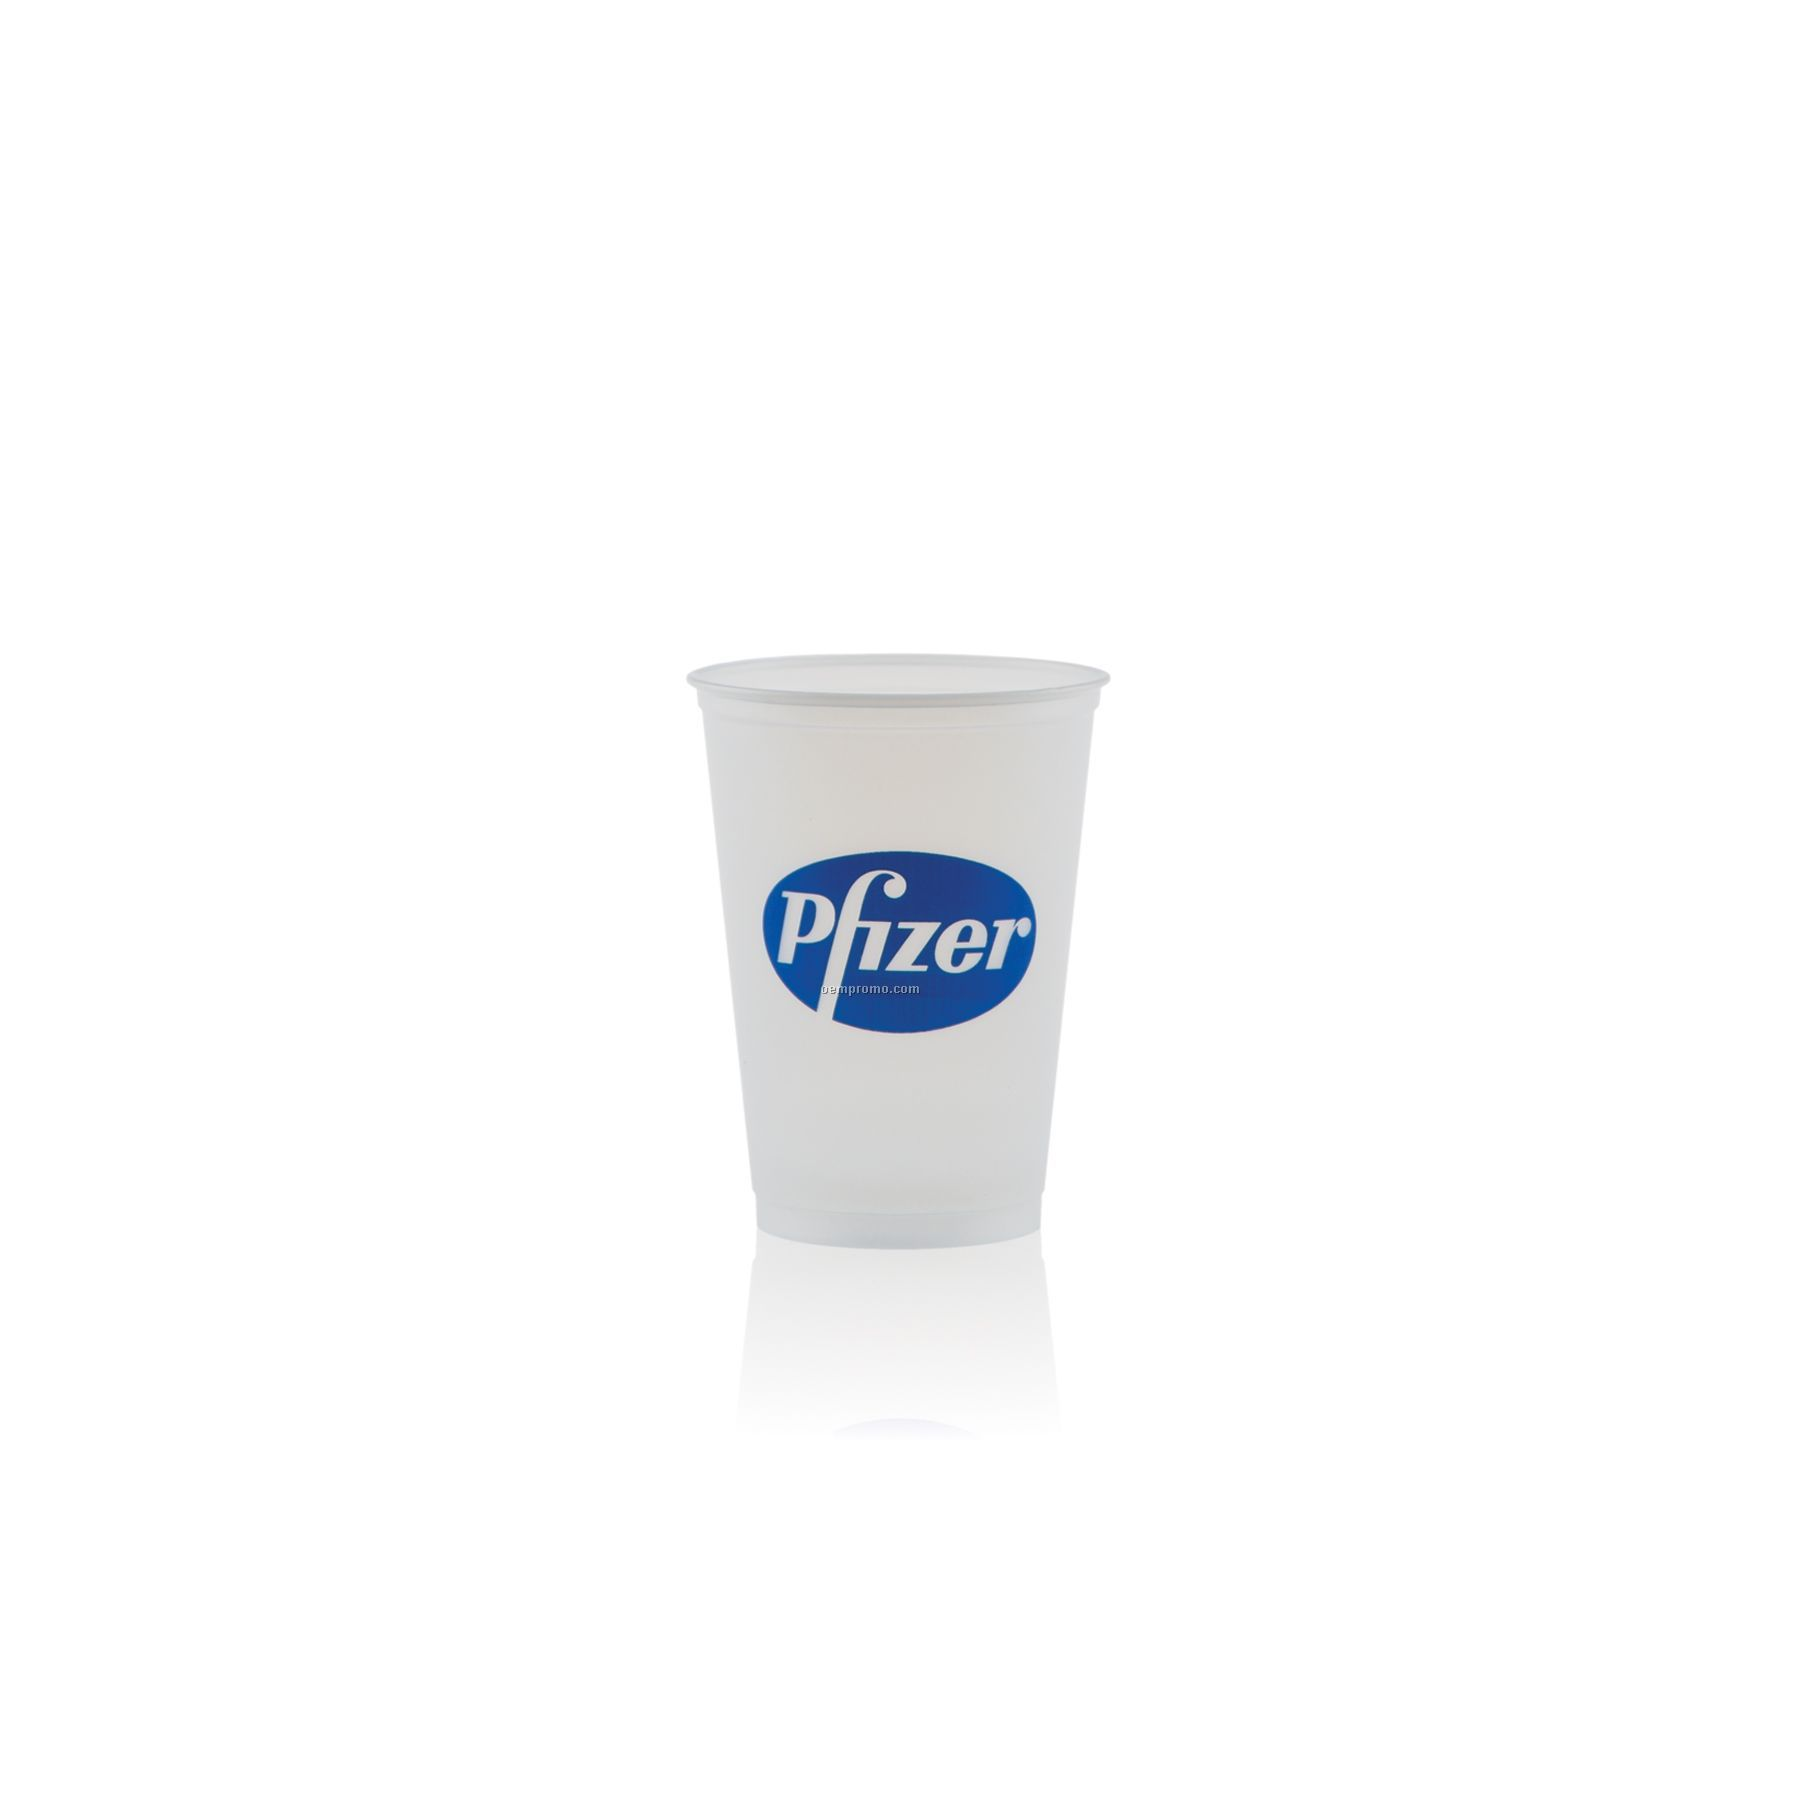 10 Oz. Soft Sided Frosted Cup